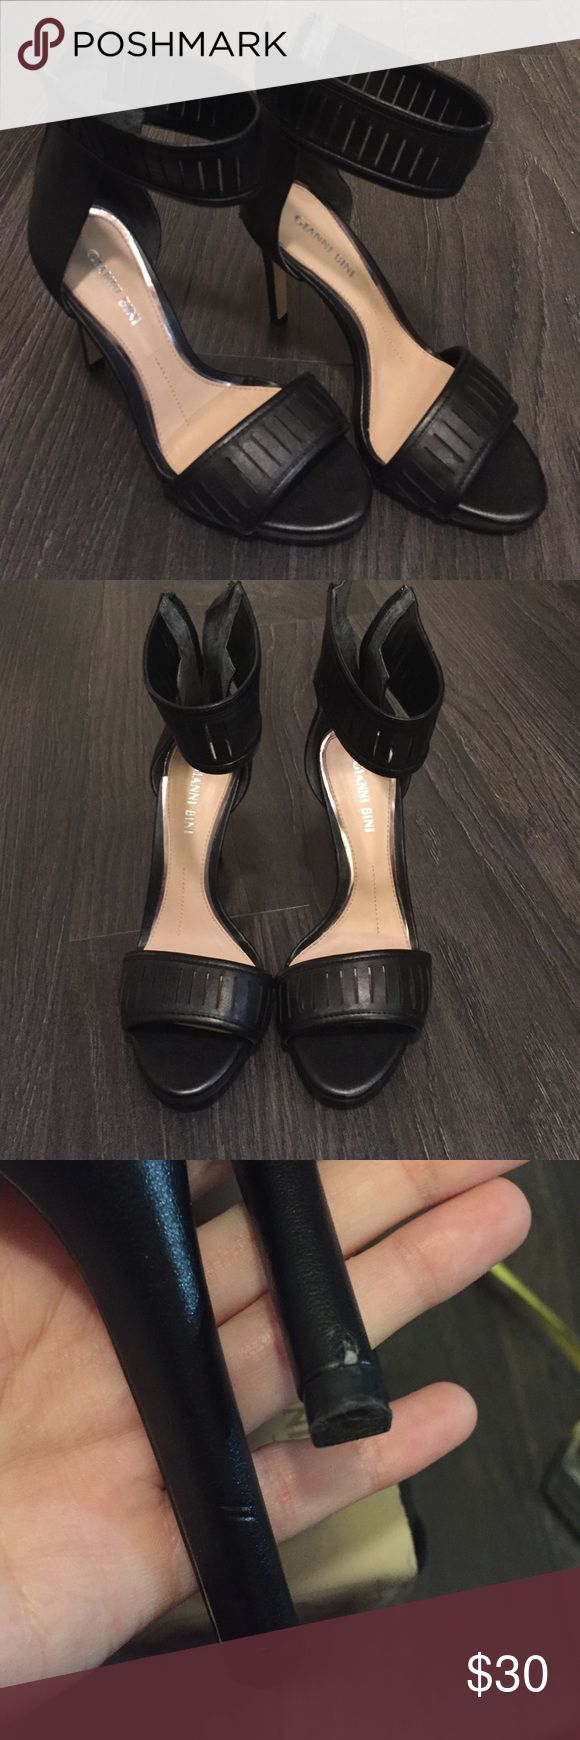 Gianni Bini Black Strap Heel Used in great condition. Black. Size 6. 4 in Heel. Scuffs apparent on heels only when holding shoe up to eye level Gianni Bini Shoes